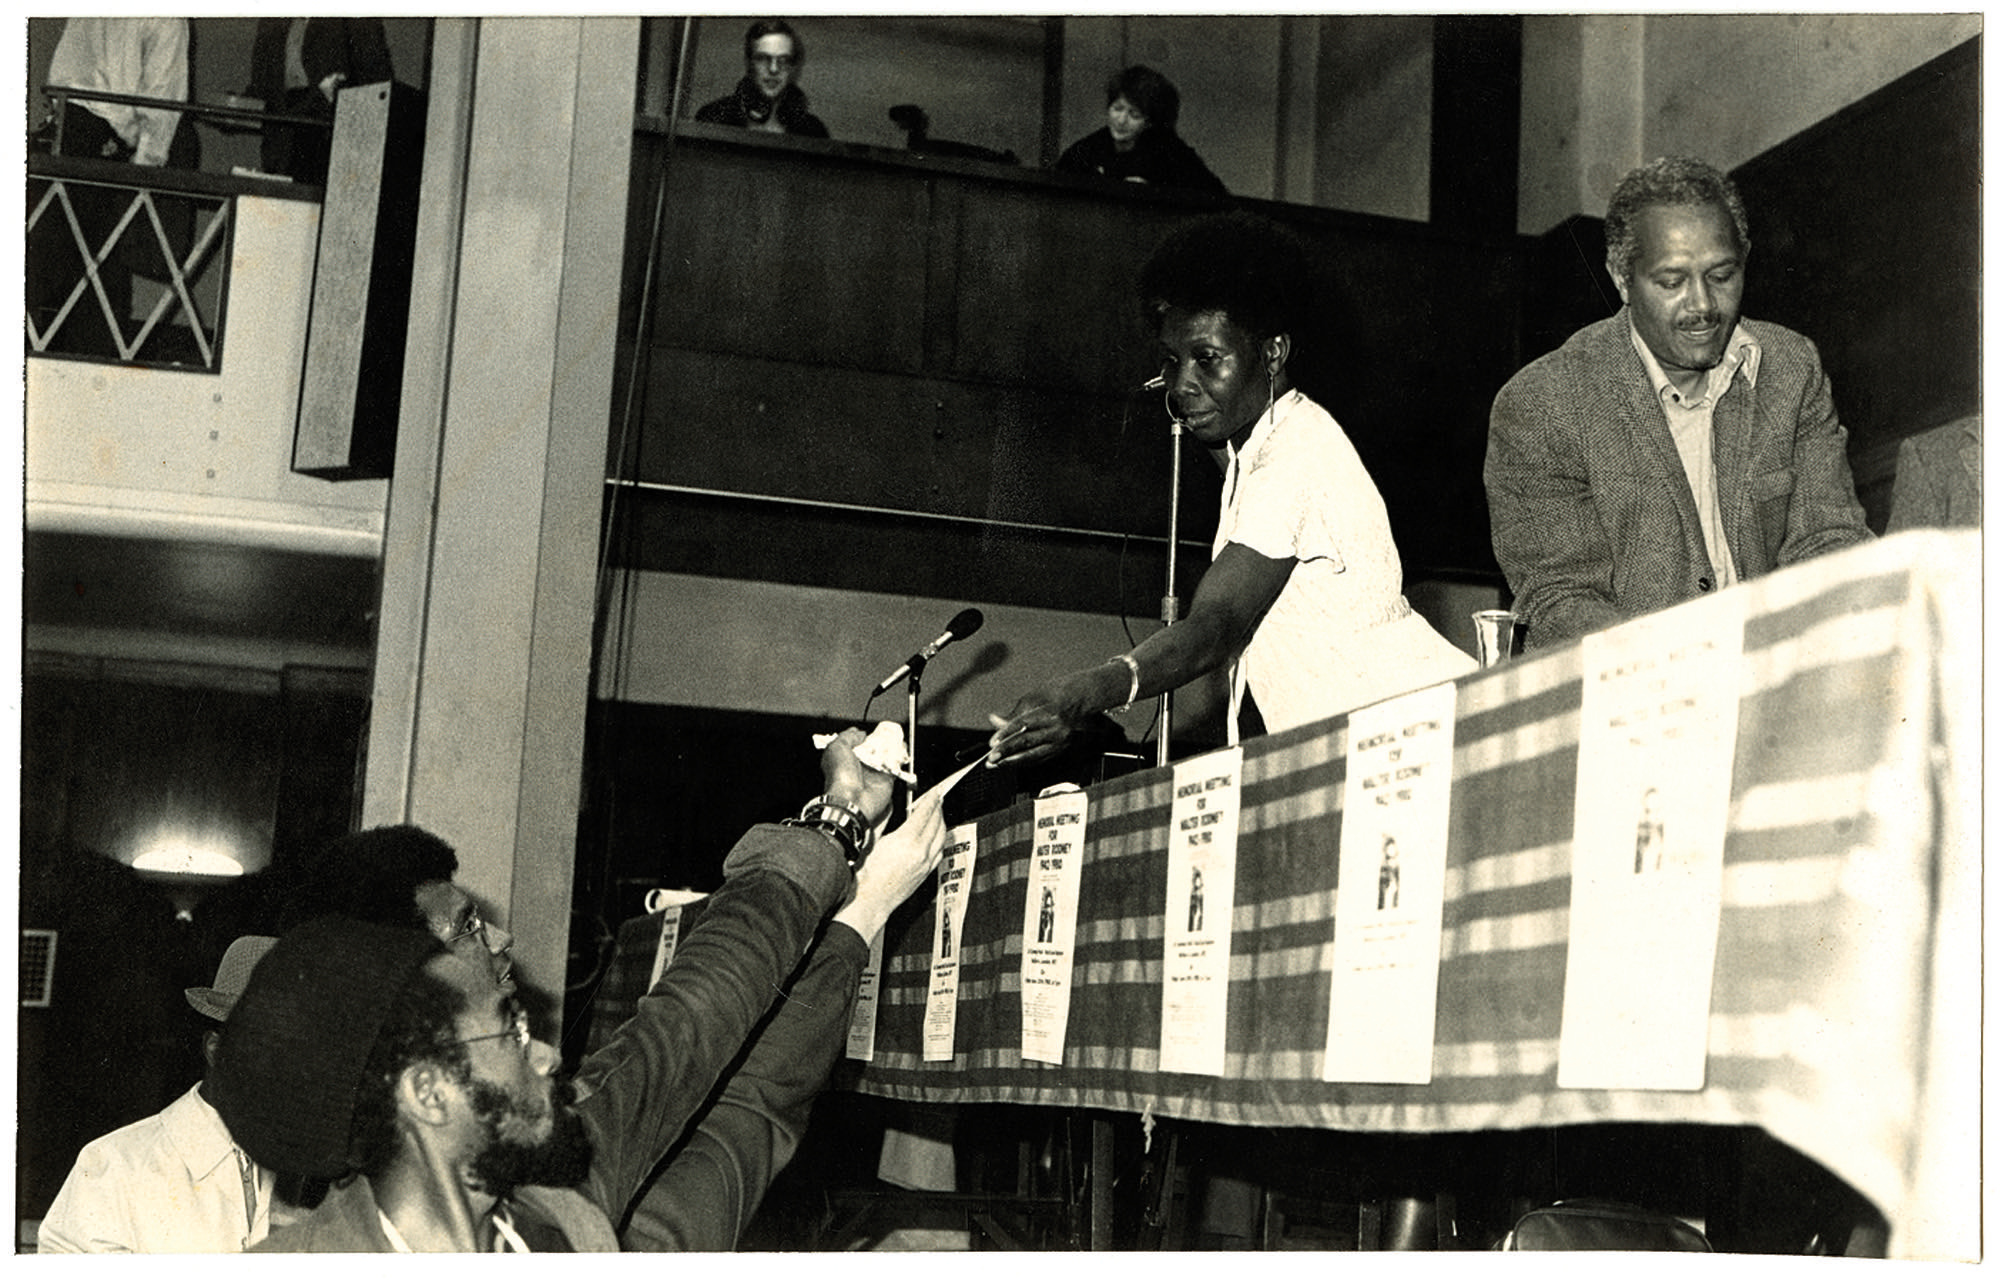 _23 L to R - Armet Francis (below), Jessica Huntley _ John La Rose (on stage) at Walter Rodney Memor